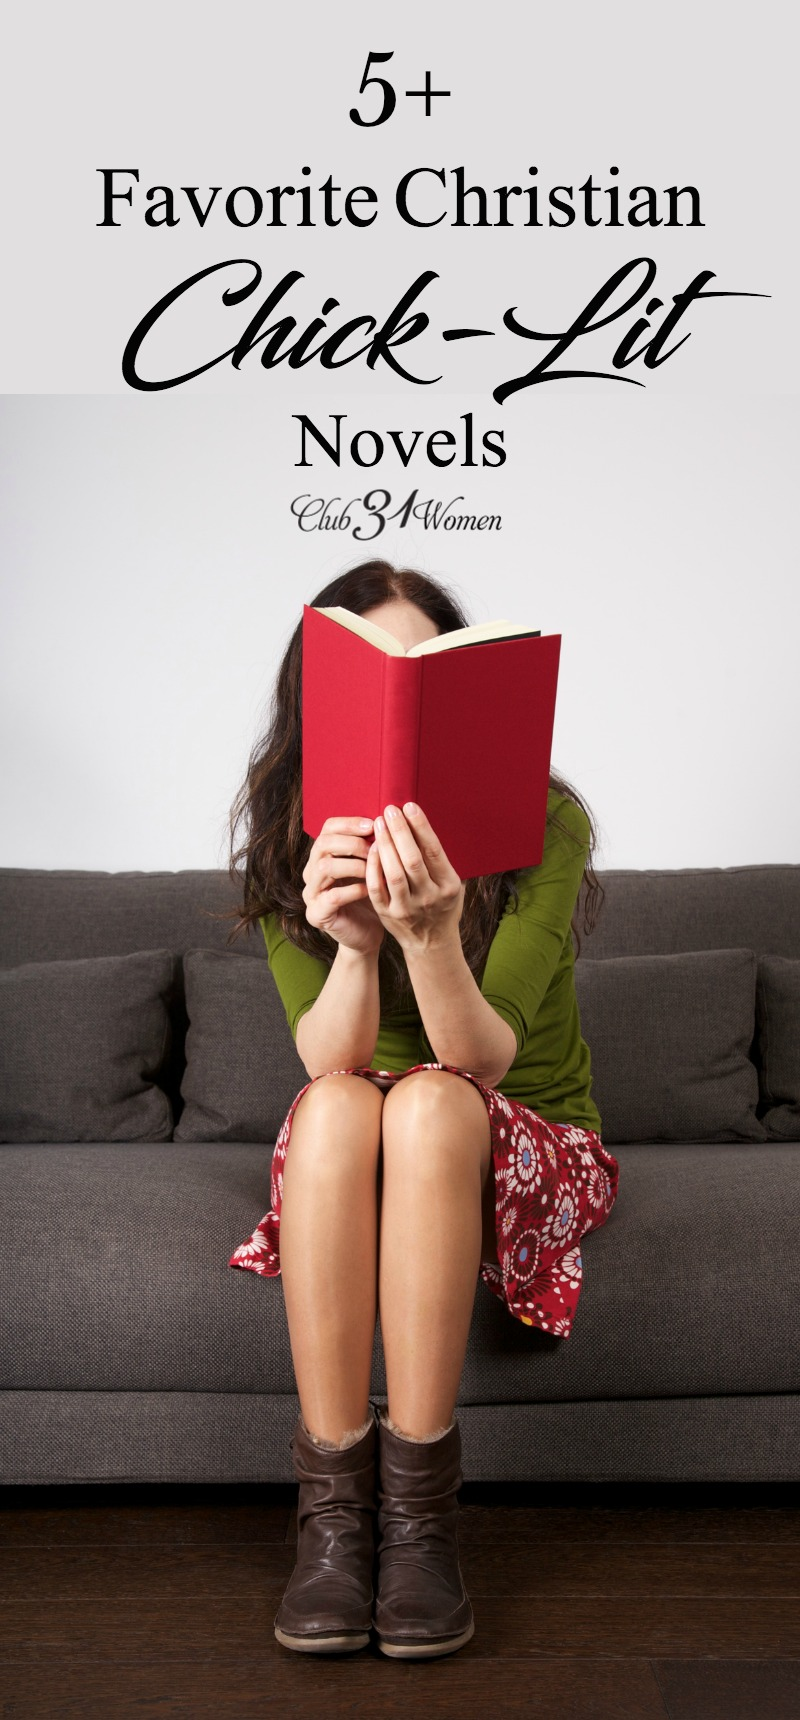 Looking for some new book titles? If you enjoy light, but pleasing, novels—these chick-lit favorites might be the perfect books for you this season. via @Club31Women